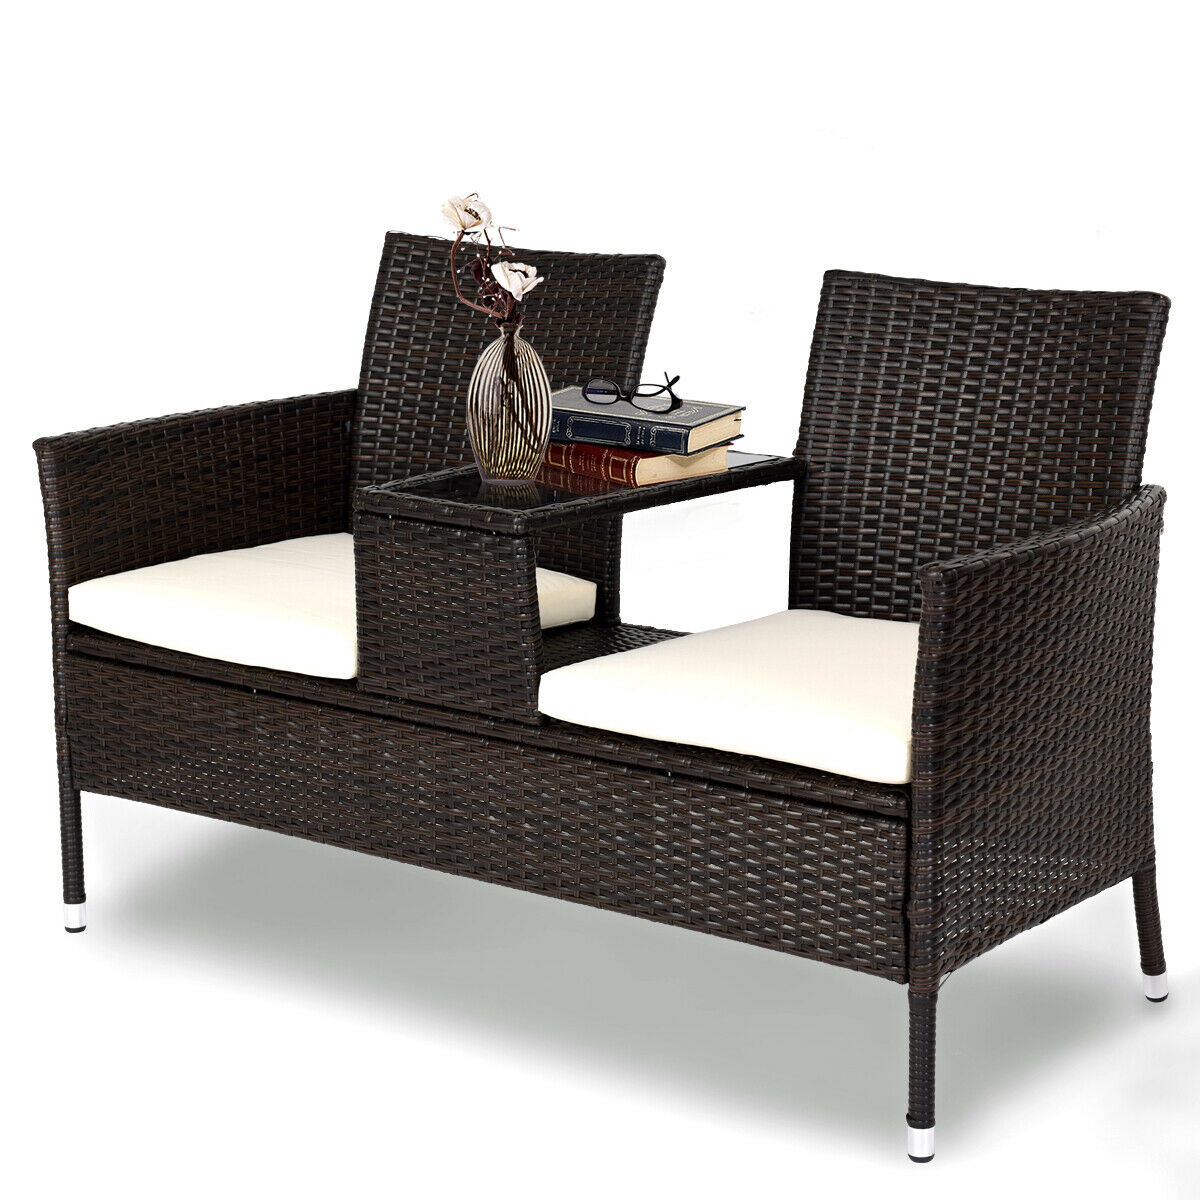 Costway Patio Rattan Chat Set Seat Sofa Loveseat Table ... on Outdoor Loveseat Sets  id=17634